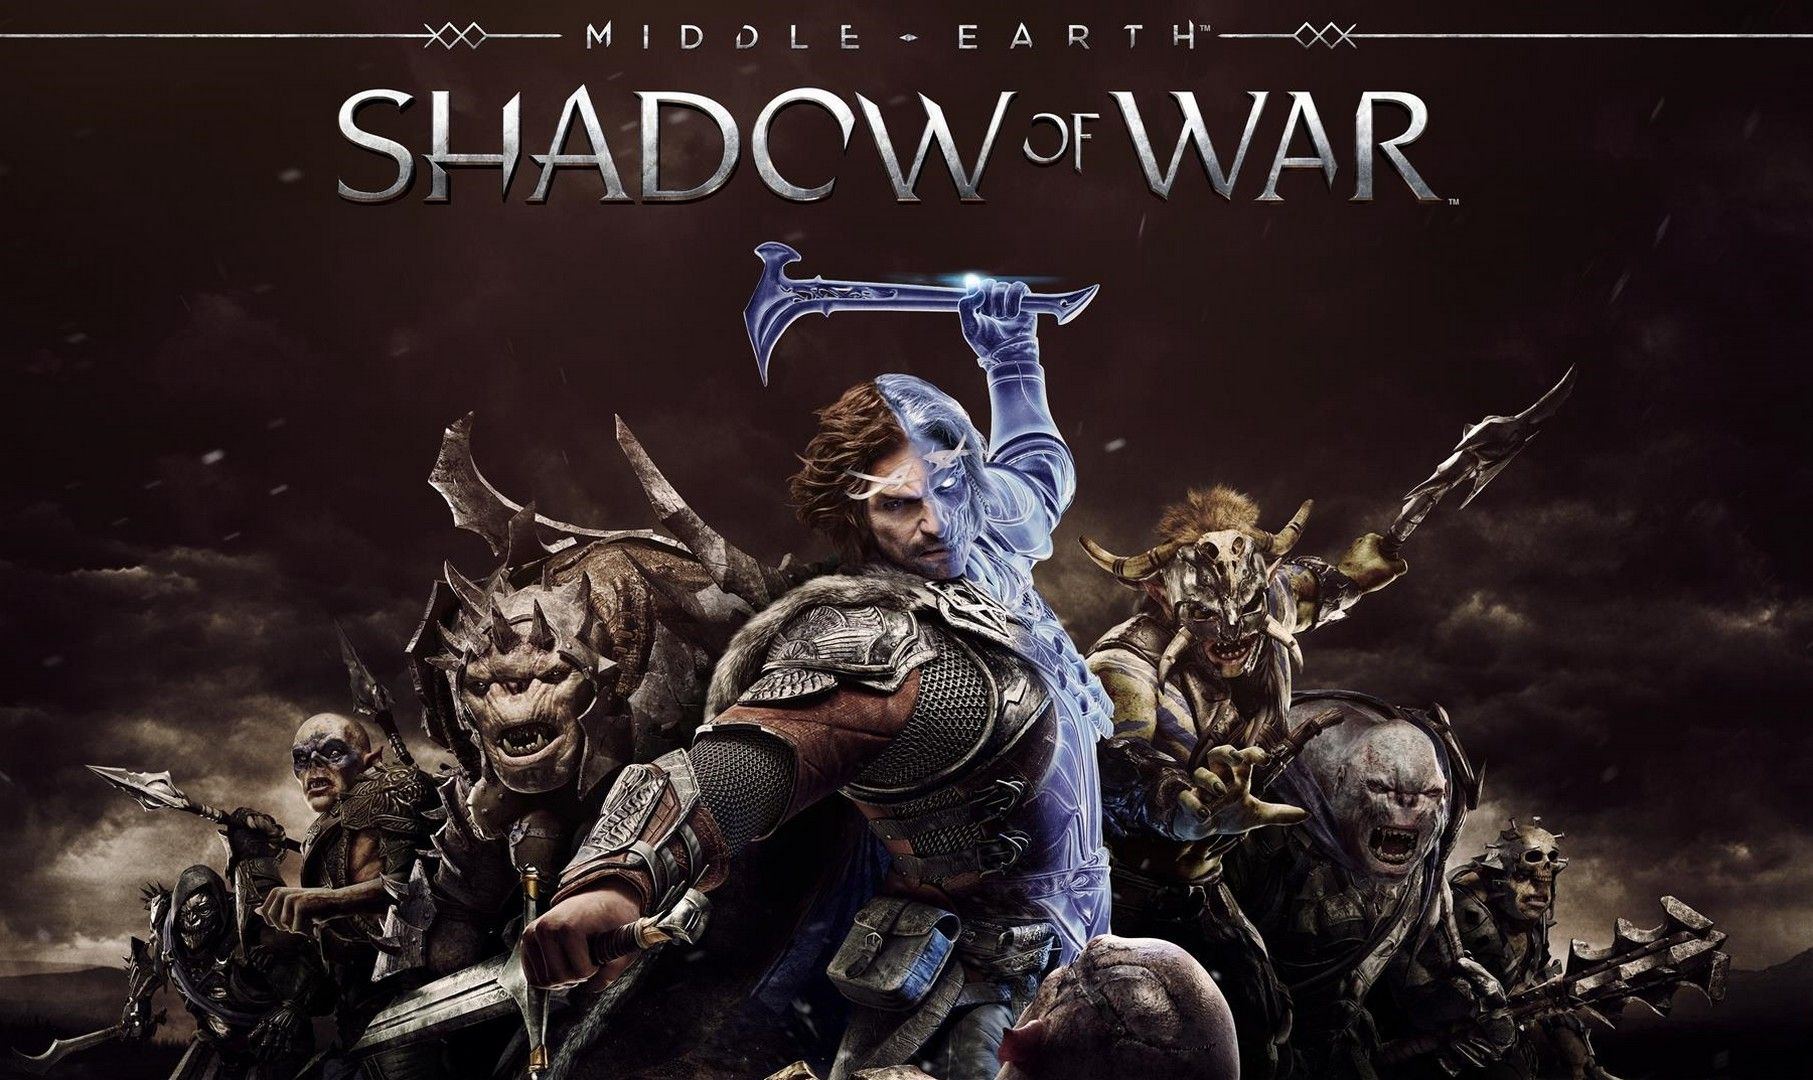 Middle-earth: Shadow of War + DLC